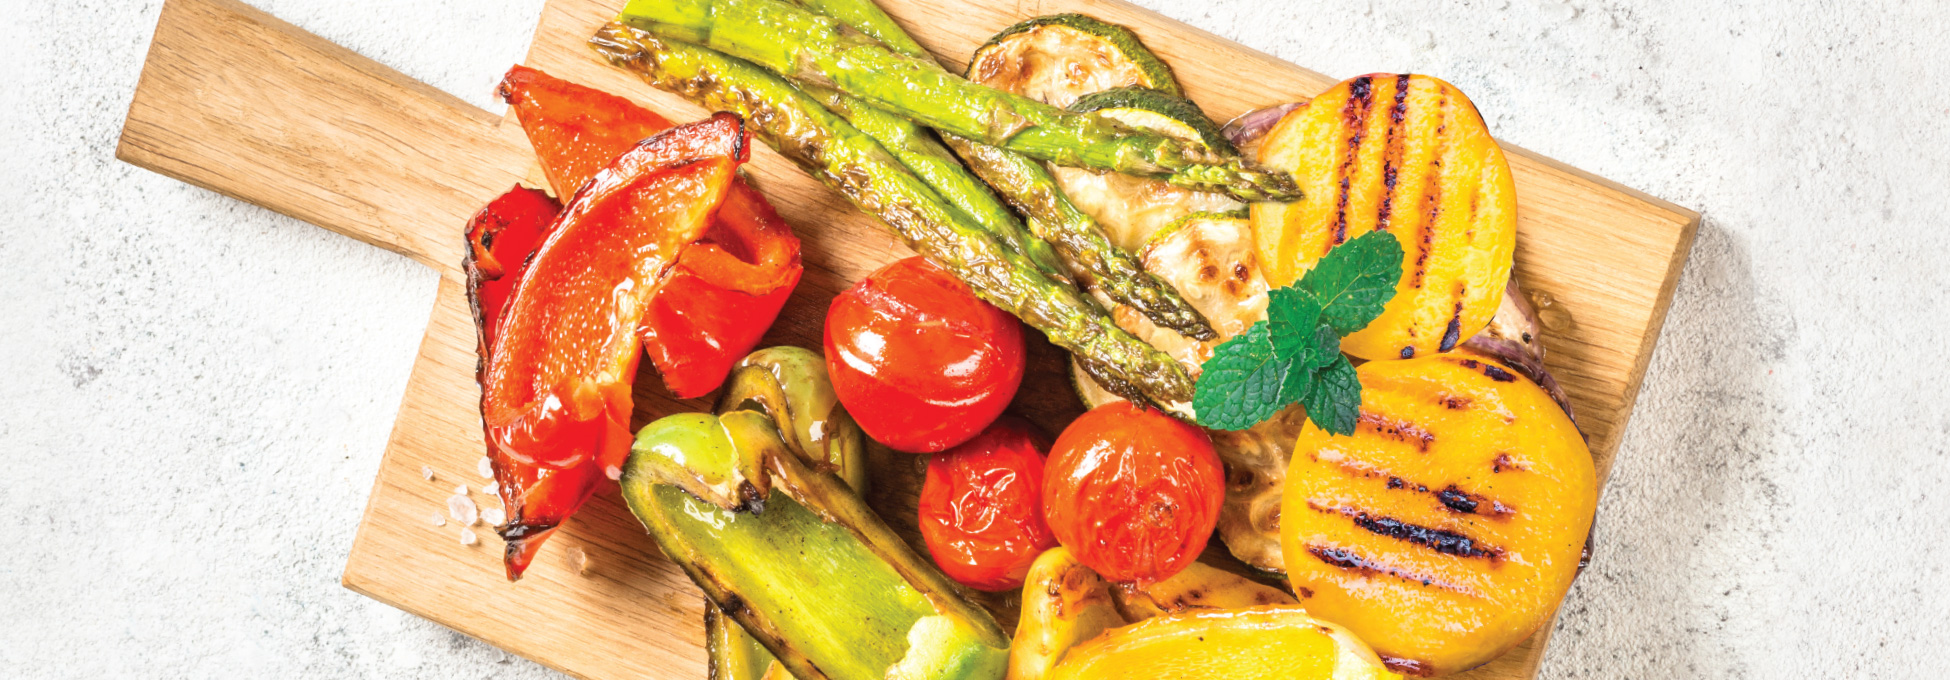 trigs-homepg-banner-grilling-veggies-fruits.jpg